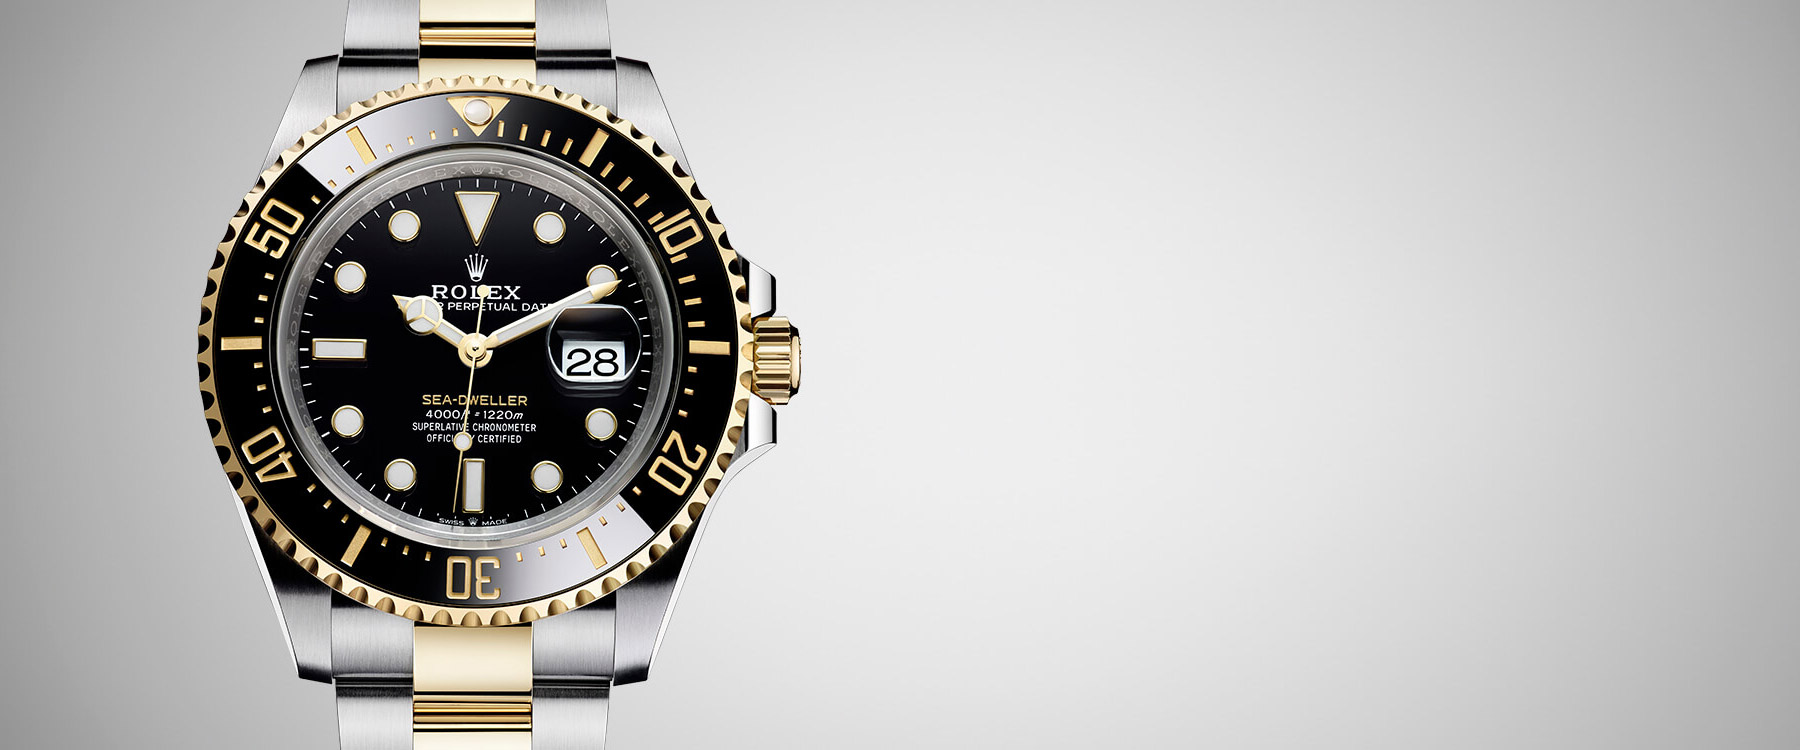 Explore the Rolex Collection